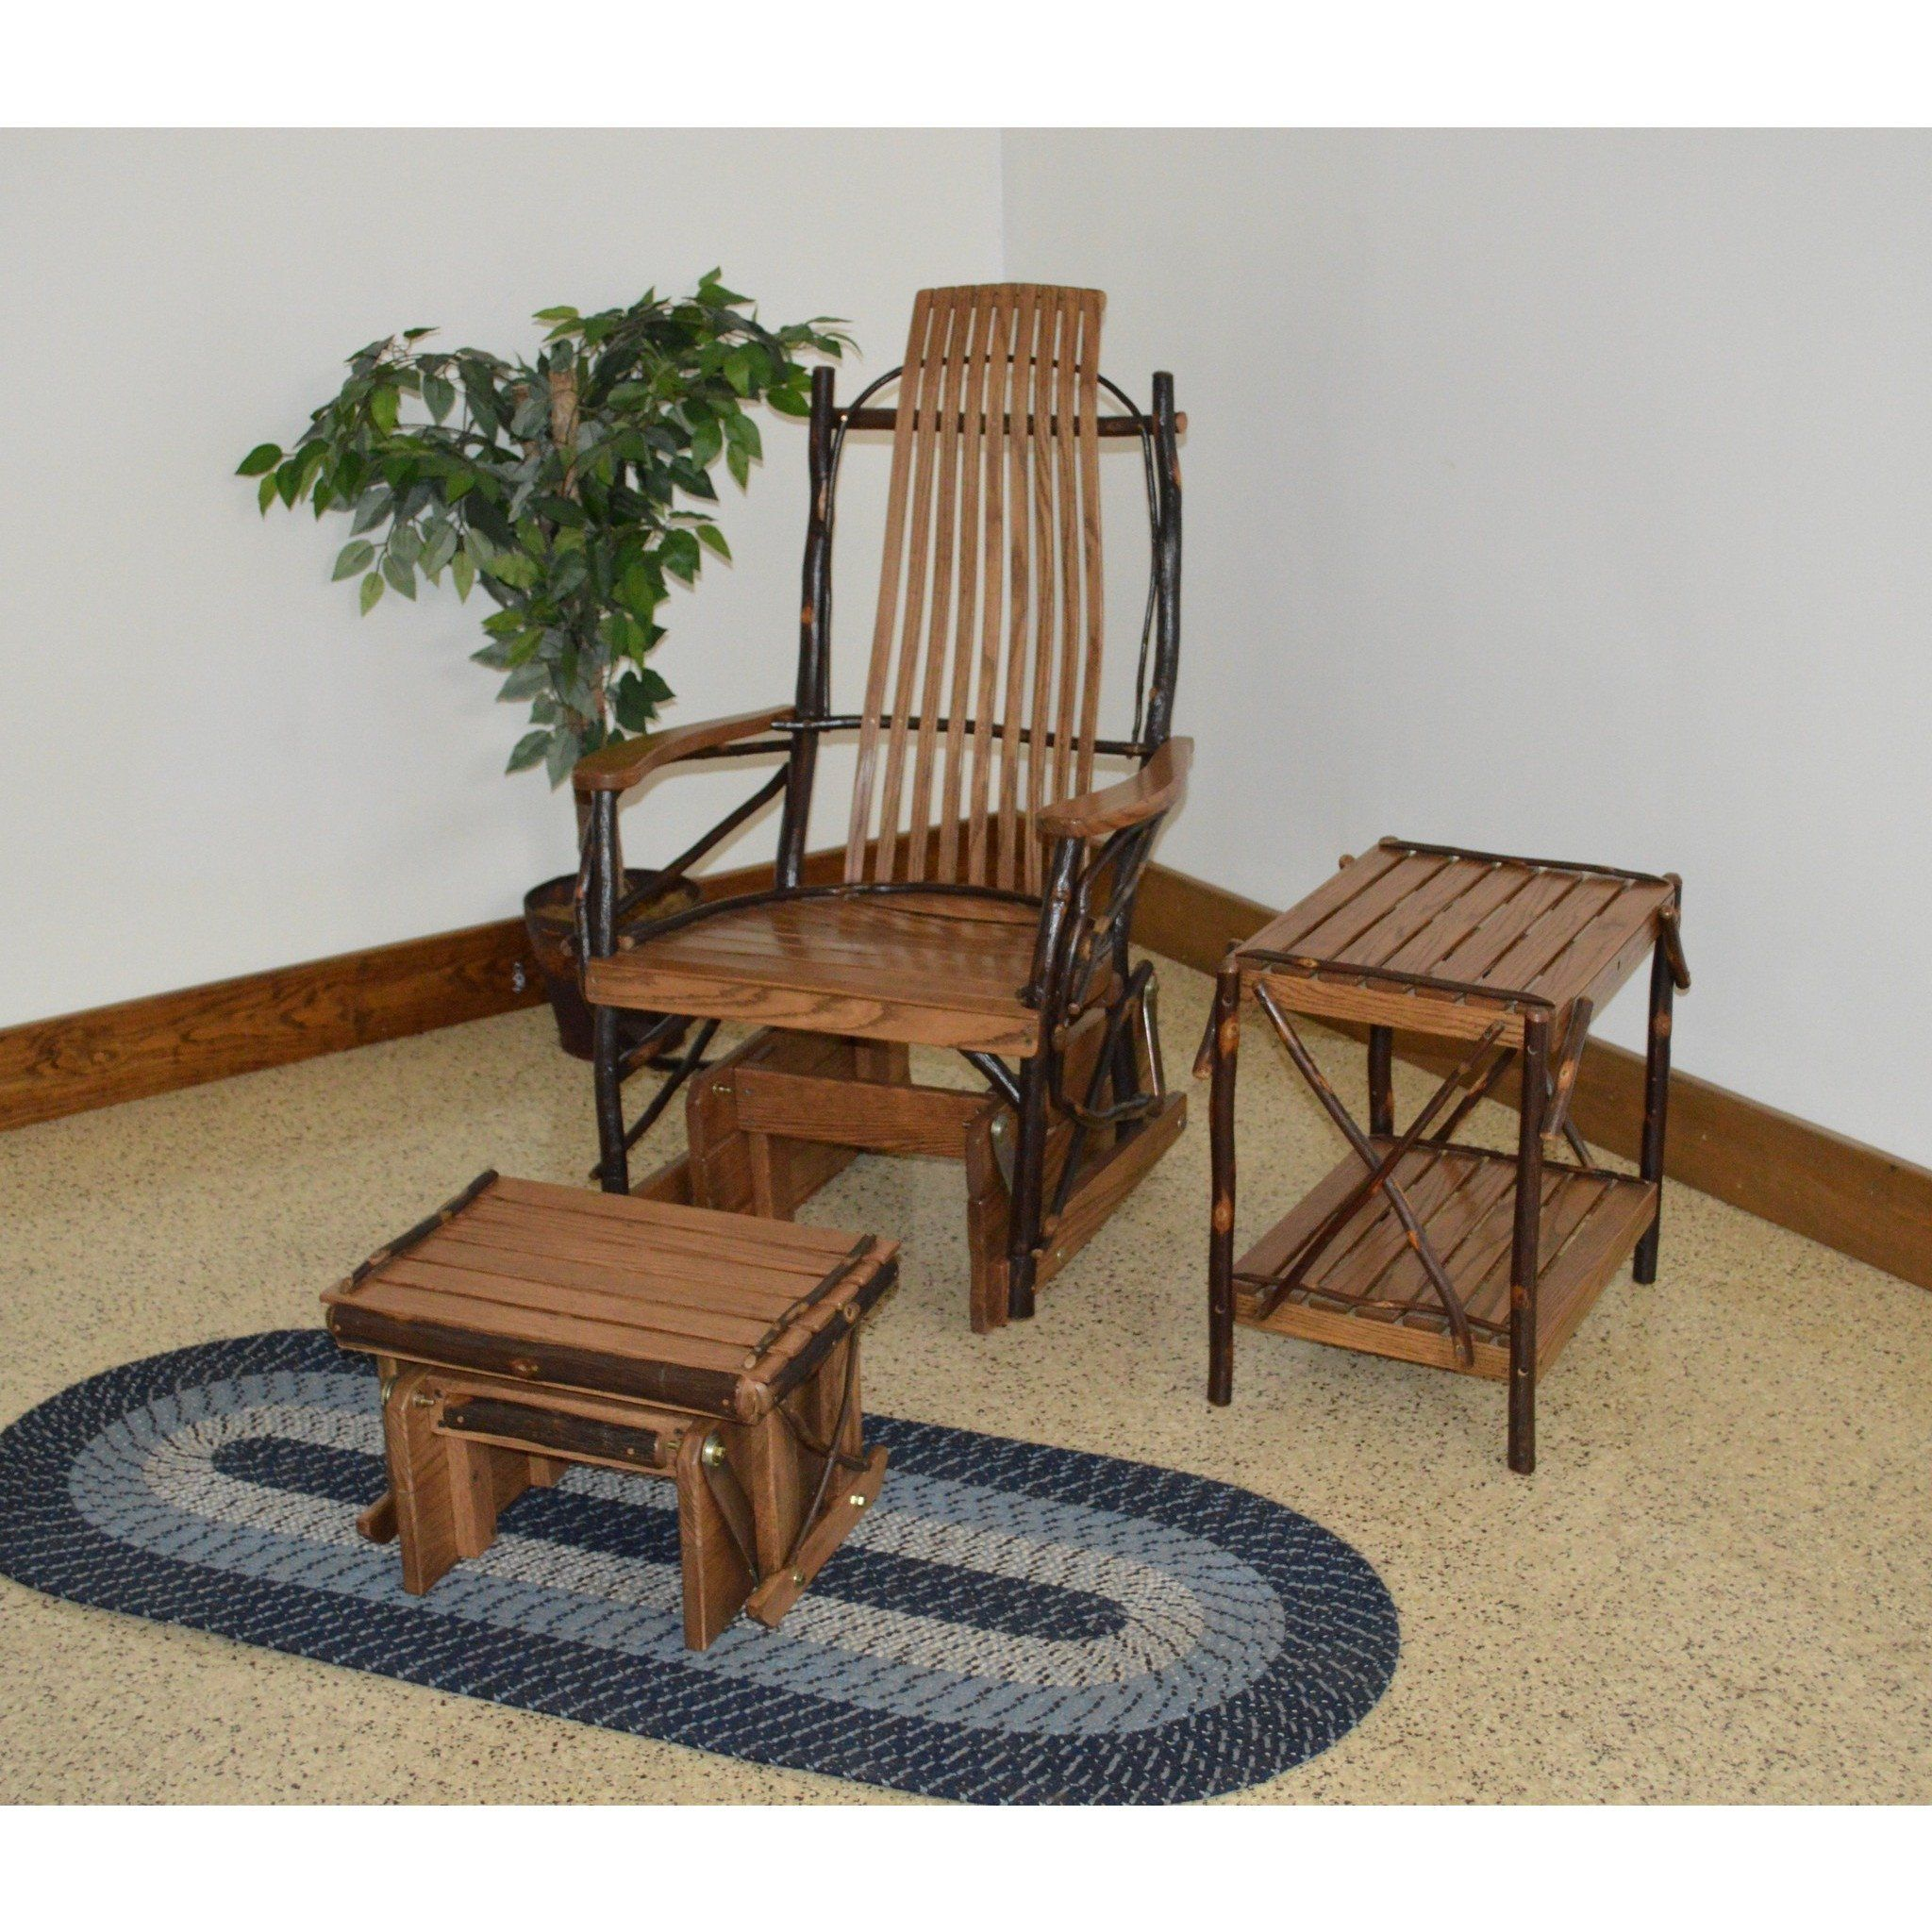 A l furniture co amish bentwood hickory glider rocker